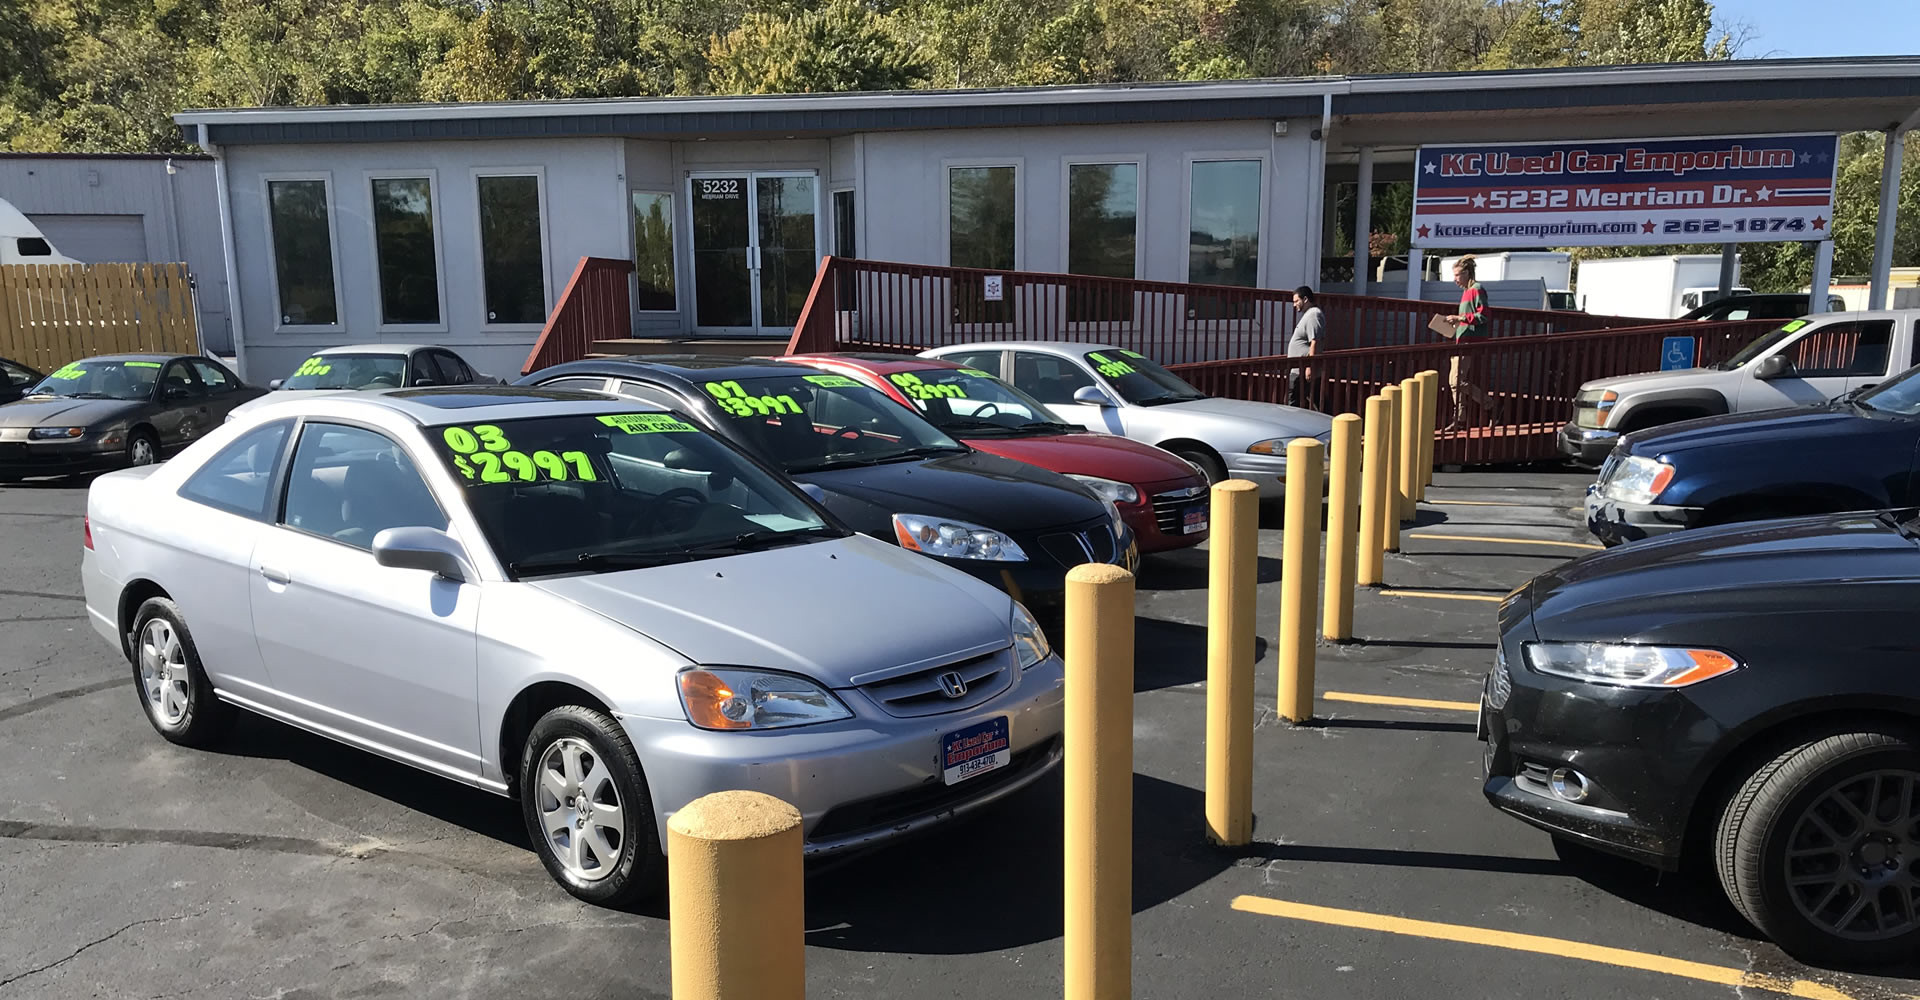 for sale in glenside pa used car under 3000 inspirational used cars near me under 5000